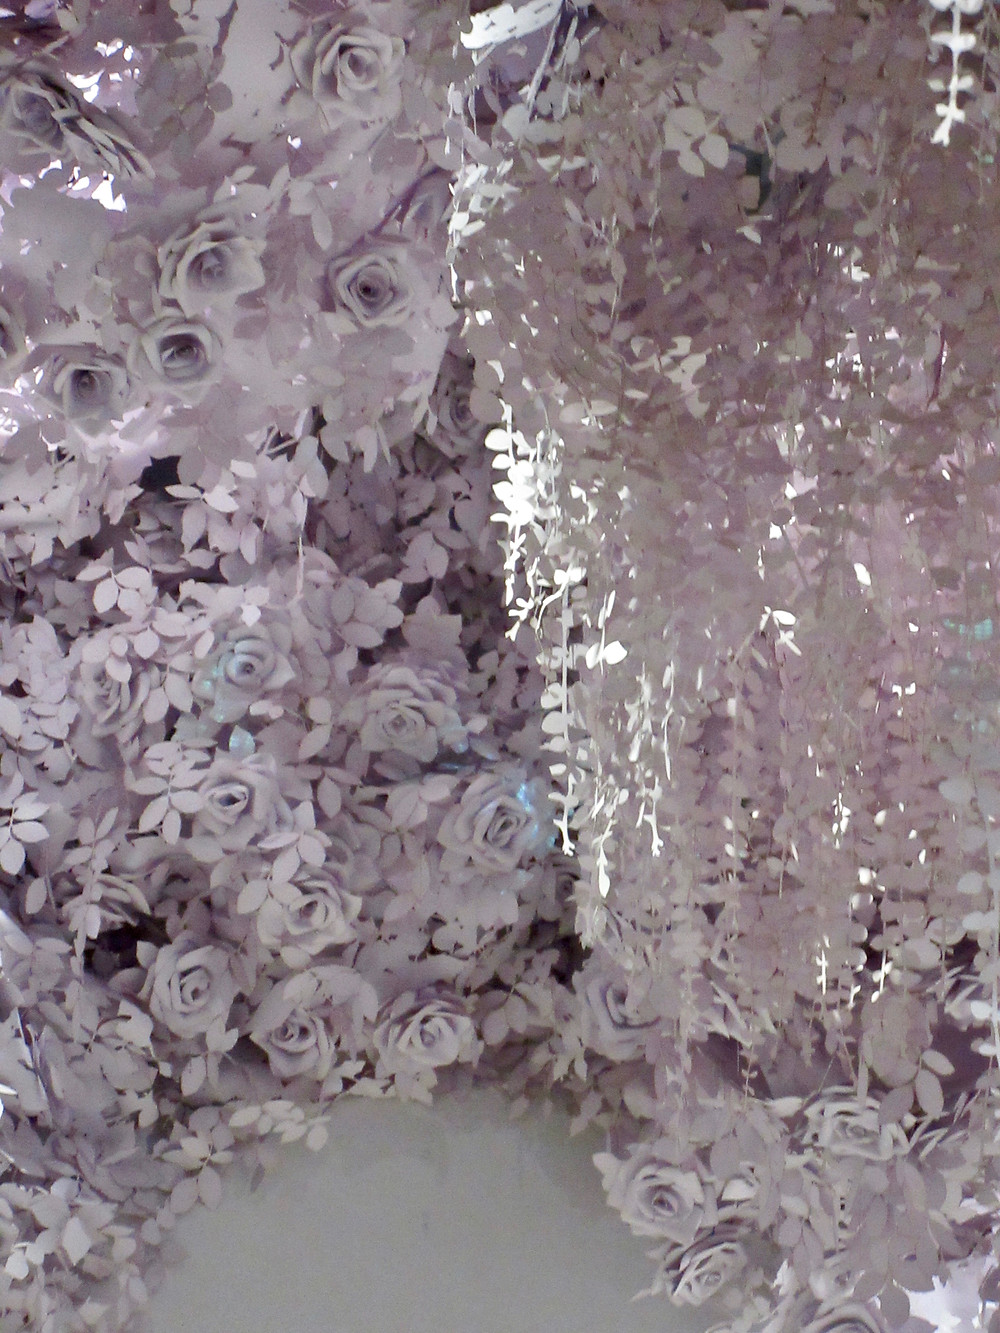 Paper flowers by Wanda Barcelona in Dior; Designer of Dreams Exhibition V&A 2019